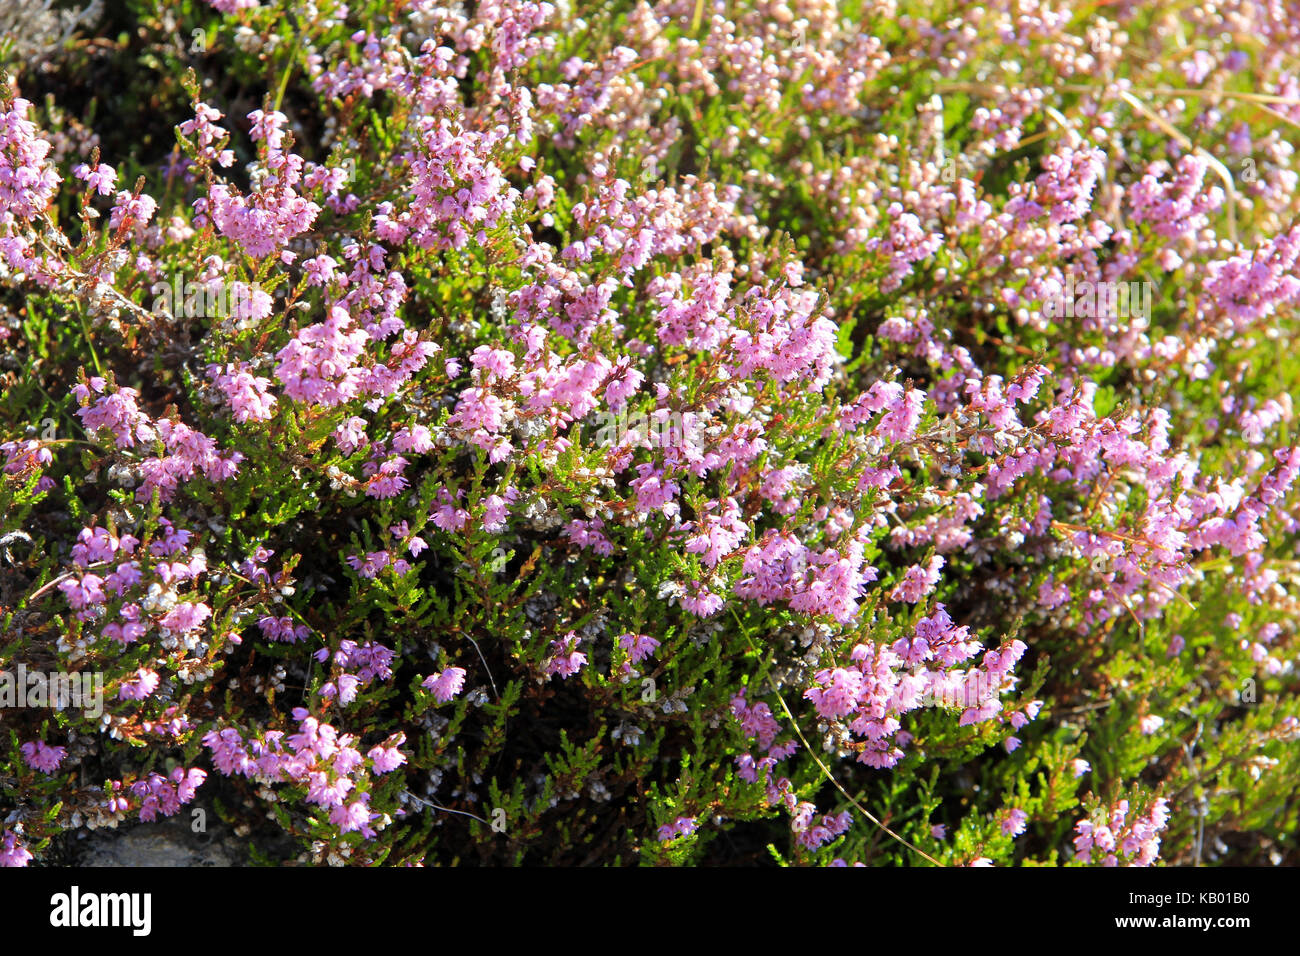 Blossoming wild flowers, heather, Ericaceae, in autumn, - Stock Image